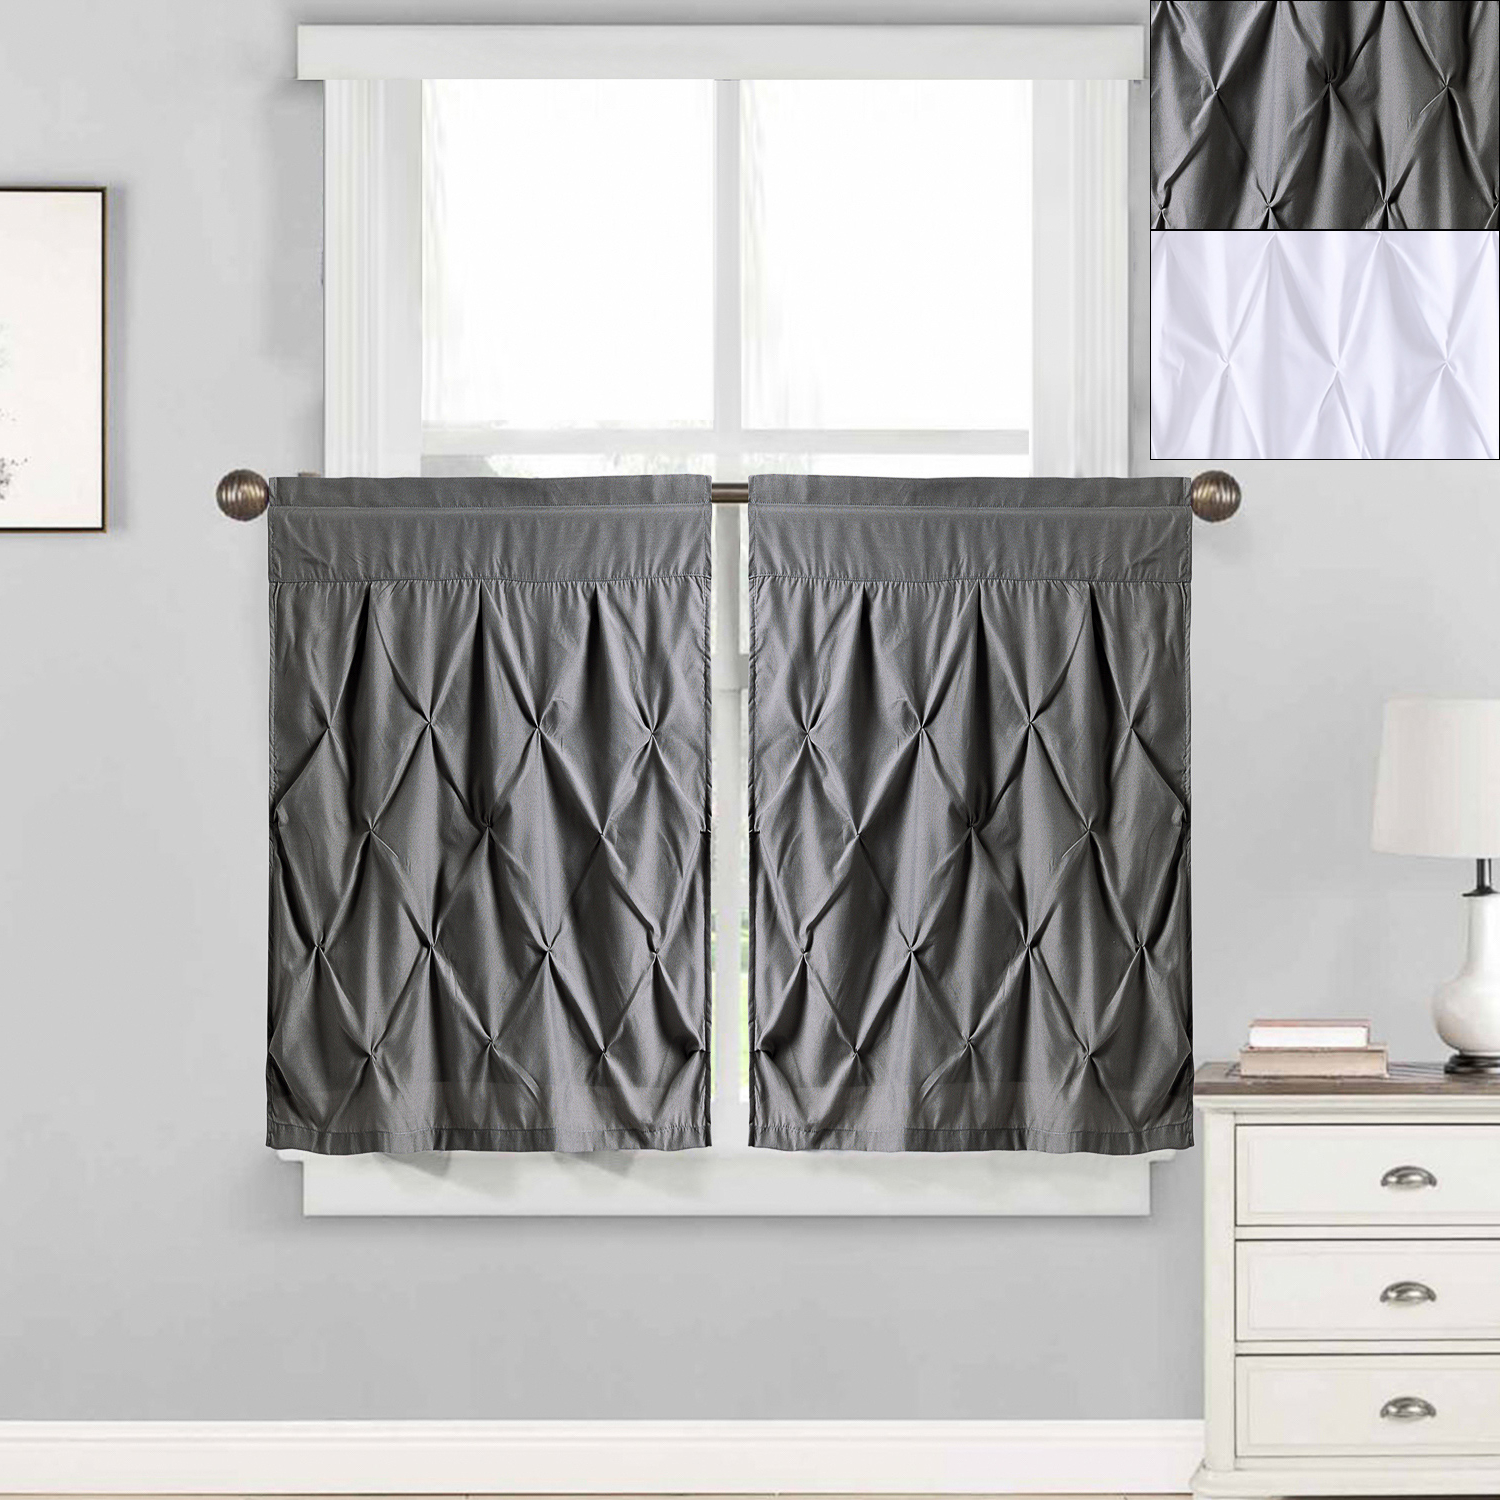 """Sheer Lace Elongated Kitchen Curtain Tier Pairs Regarding Widely Used Details About Hudson Pintuck Kitchen Window Curtain Tier Pair 24""""x30"""" (View 16 of 20)"""